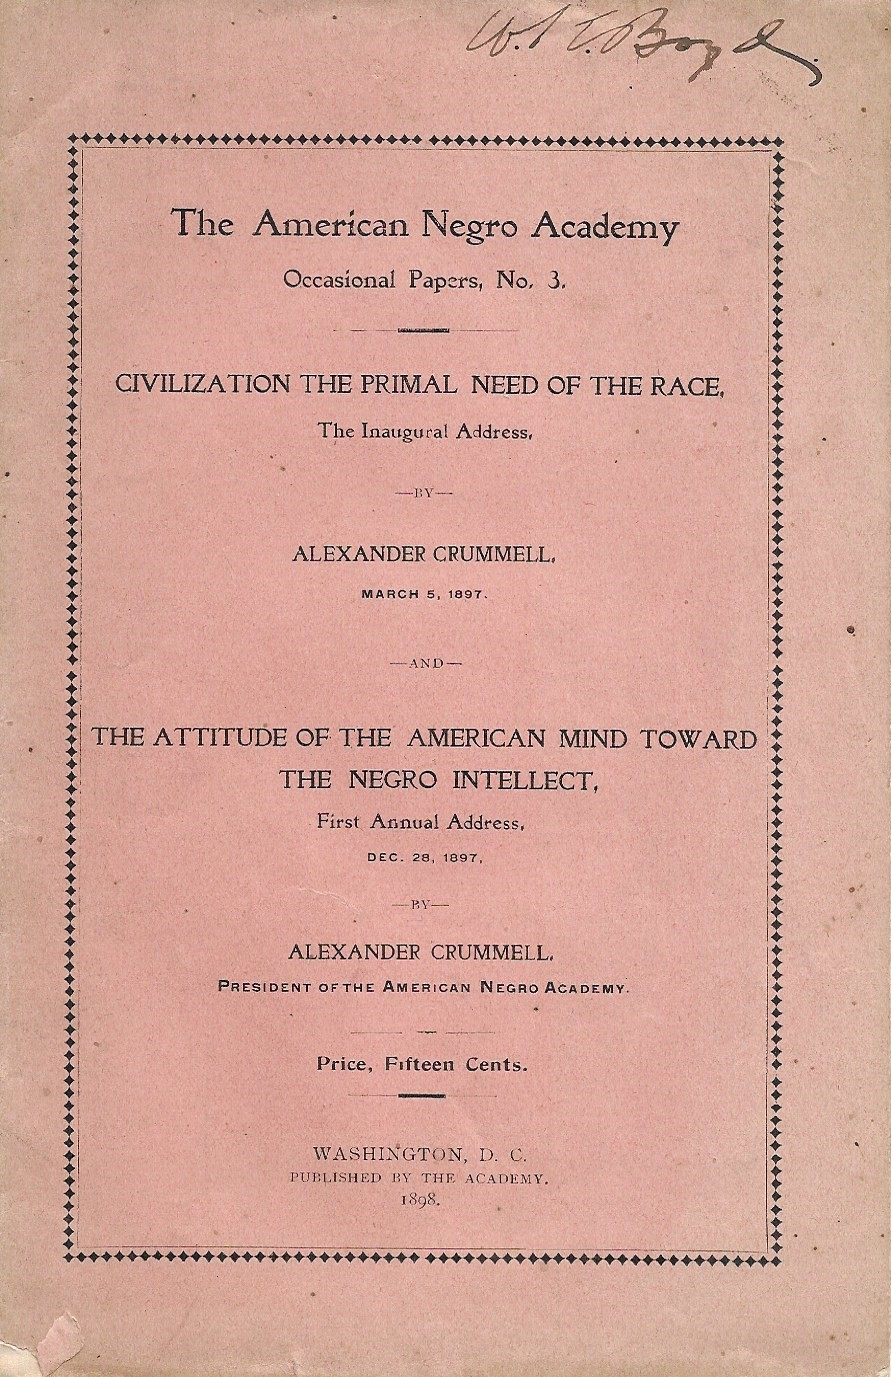 Image for Civilization: The Primal Need of the Race and The Attitude of the American Mind Toward the Negro Intellect : in The American Negro Academy, Occasional Papers, No. 3